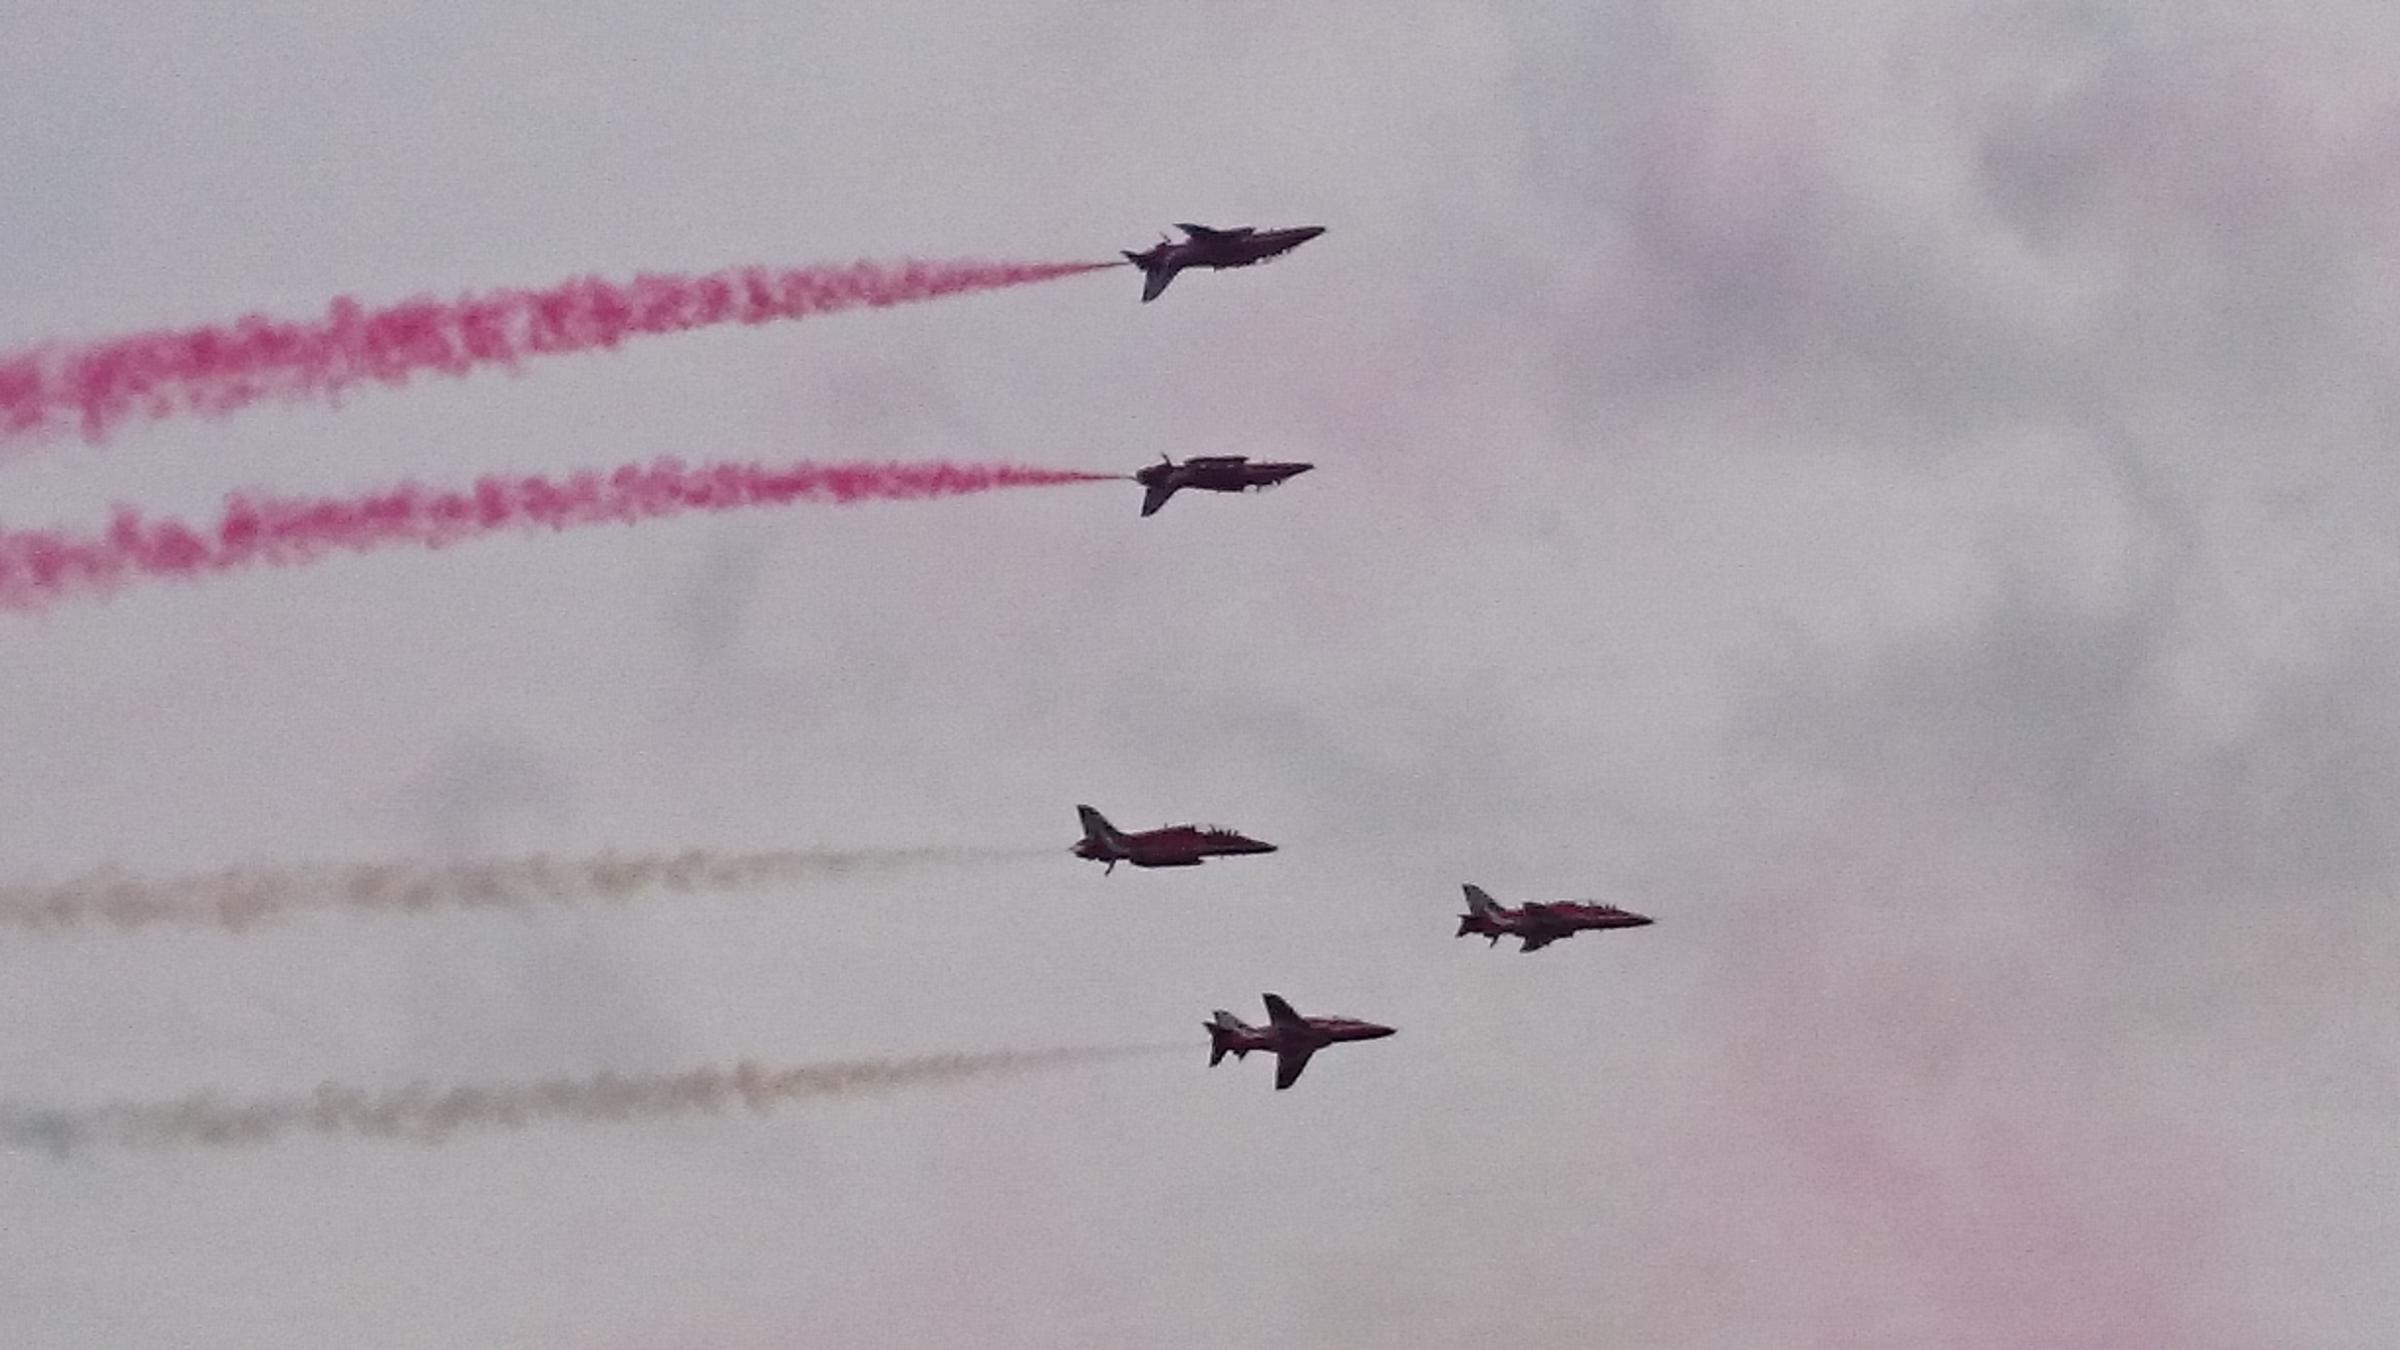 Red Arrows display spectacular